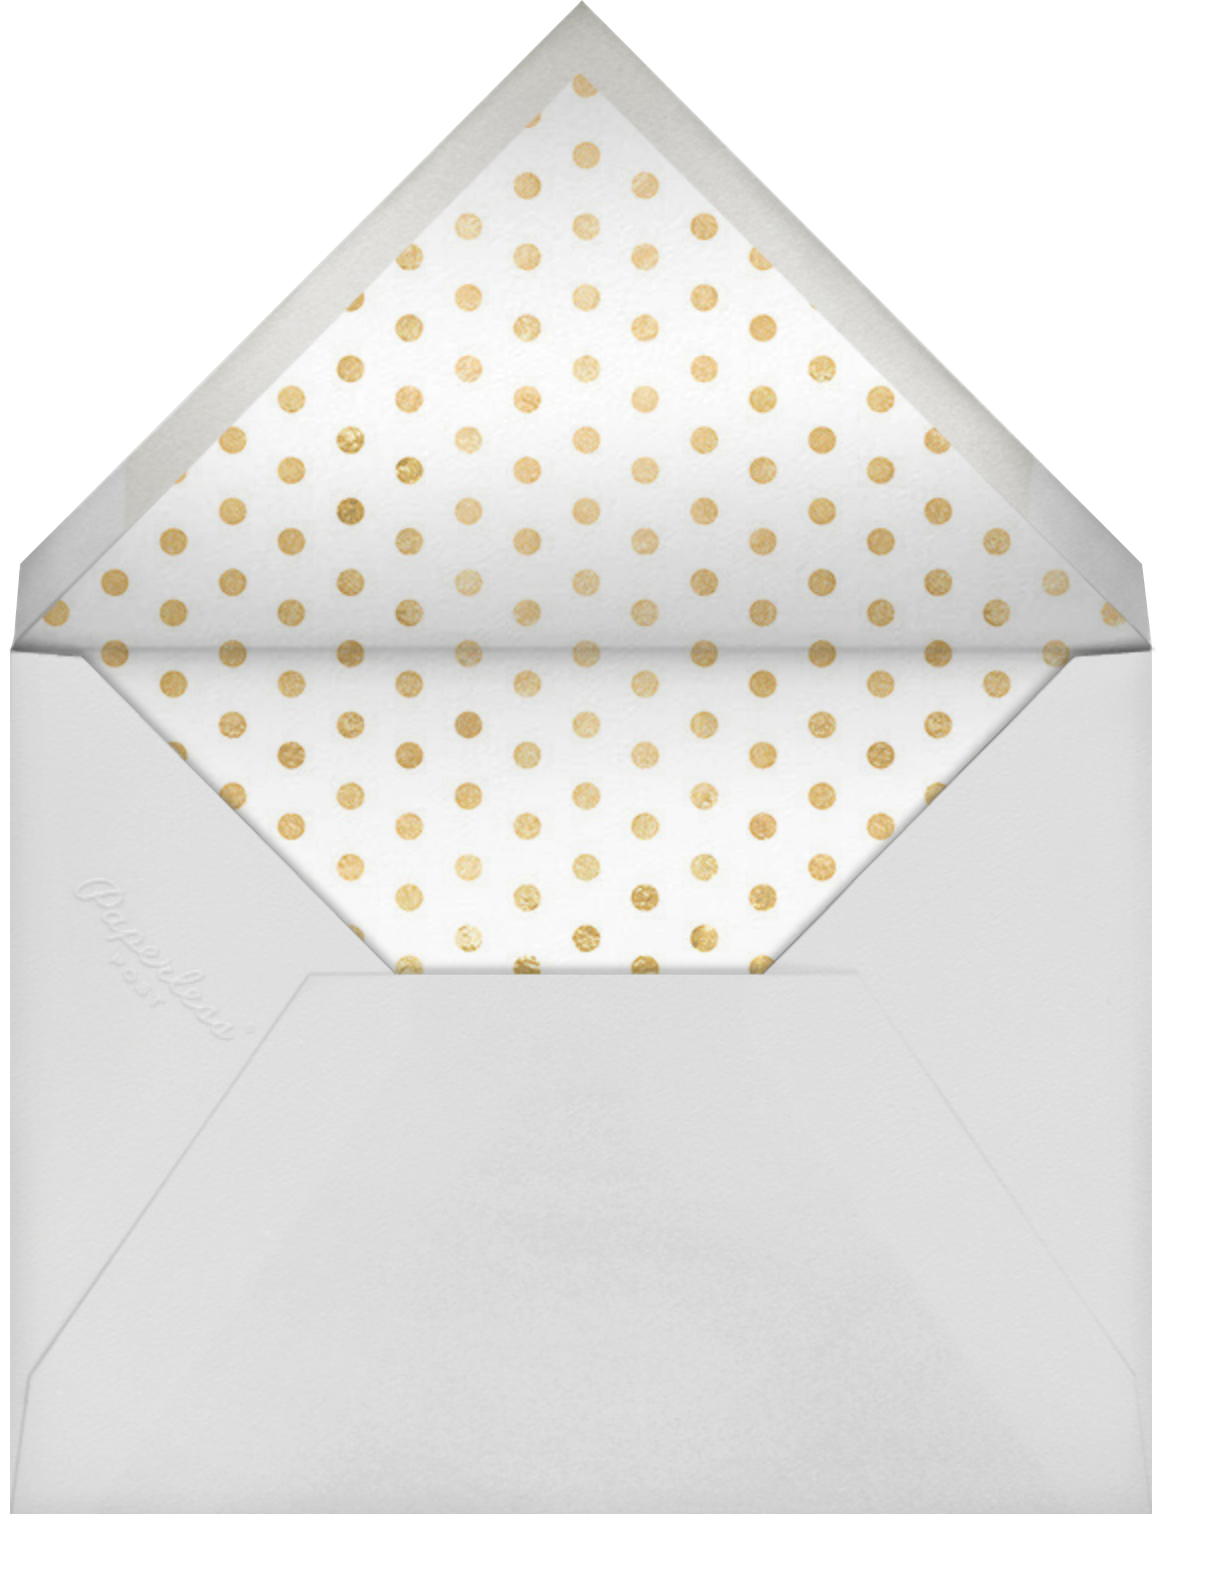 Magical Birthday (Invitation) - Rifle Paper Co. - Baby shower - envelope back